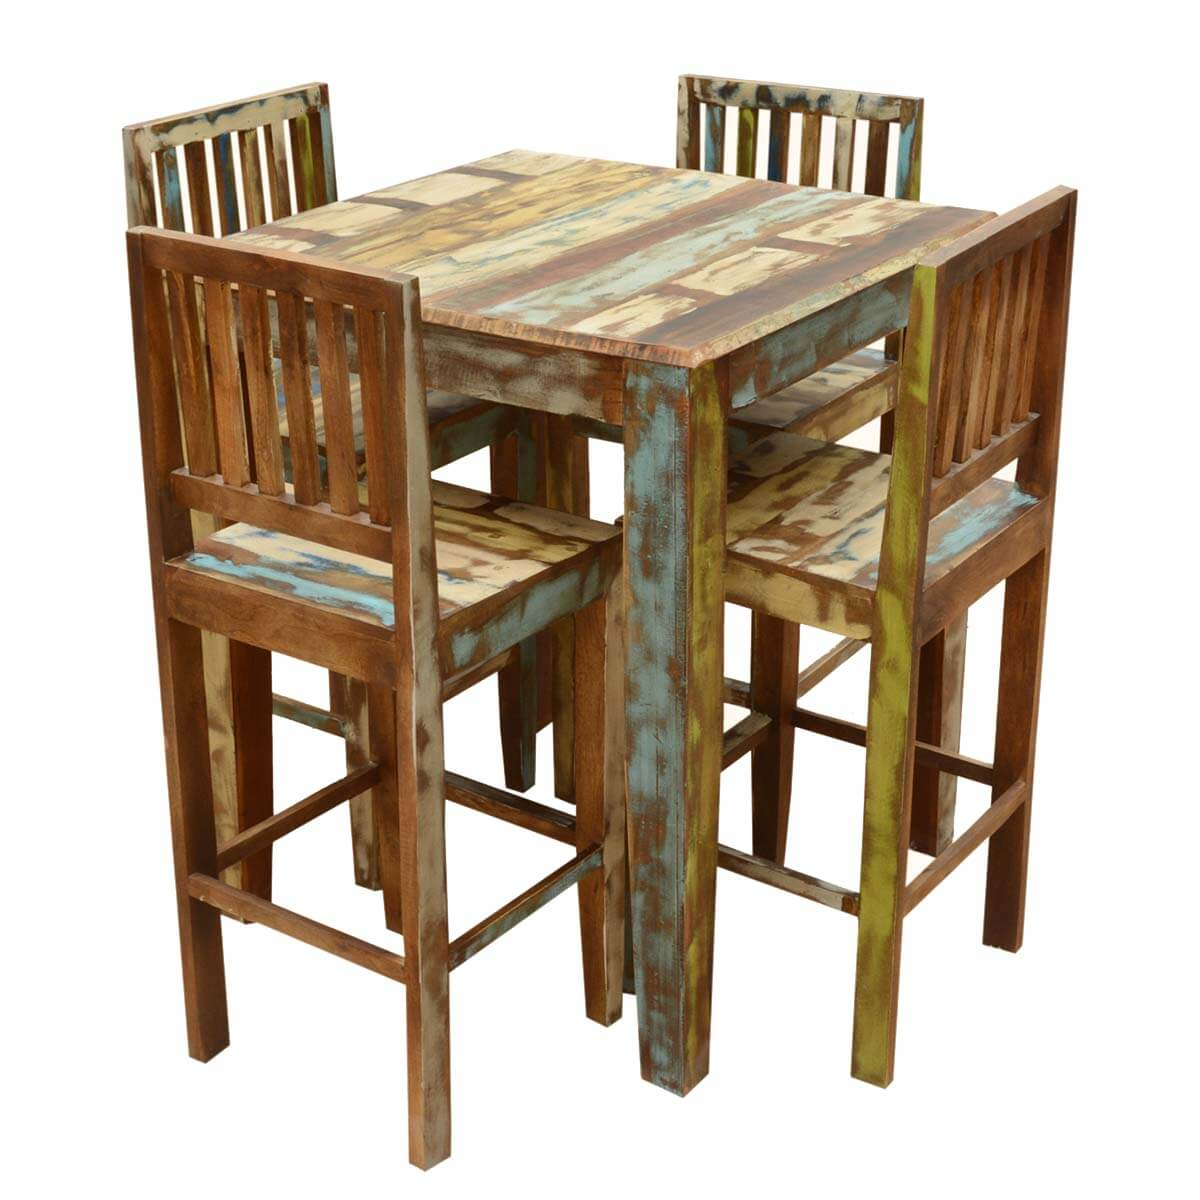 Appalachian Rustic Reclaimed Wood High Bar Table amp Chair Set